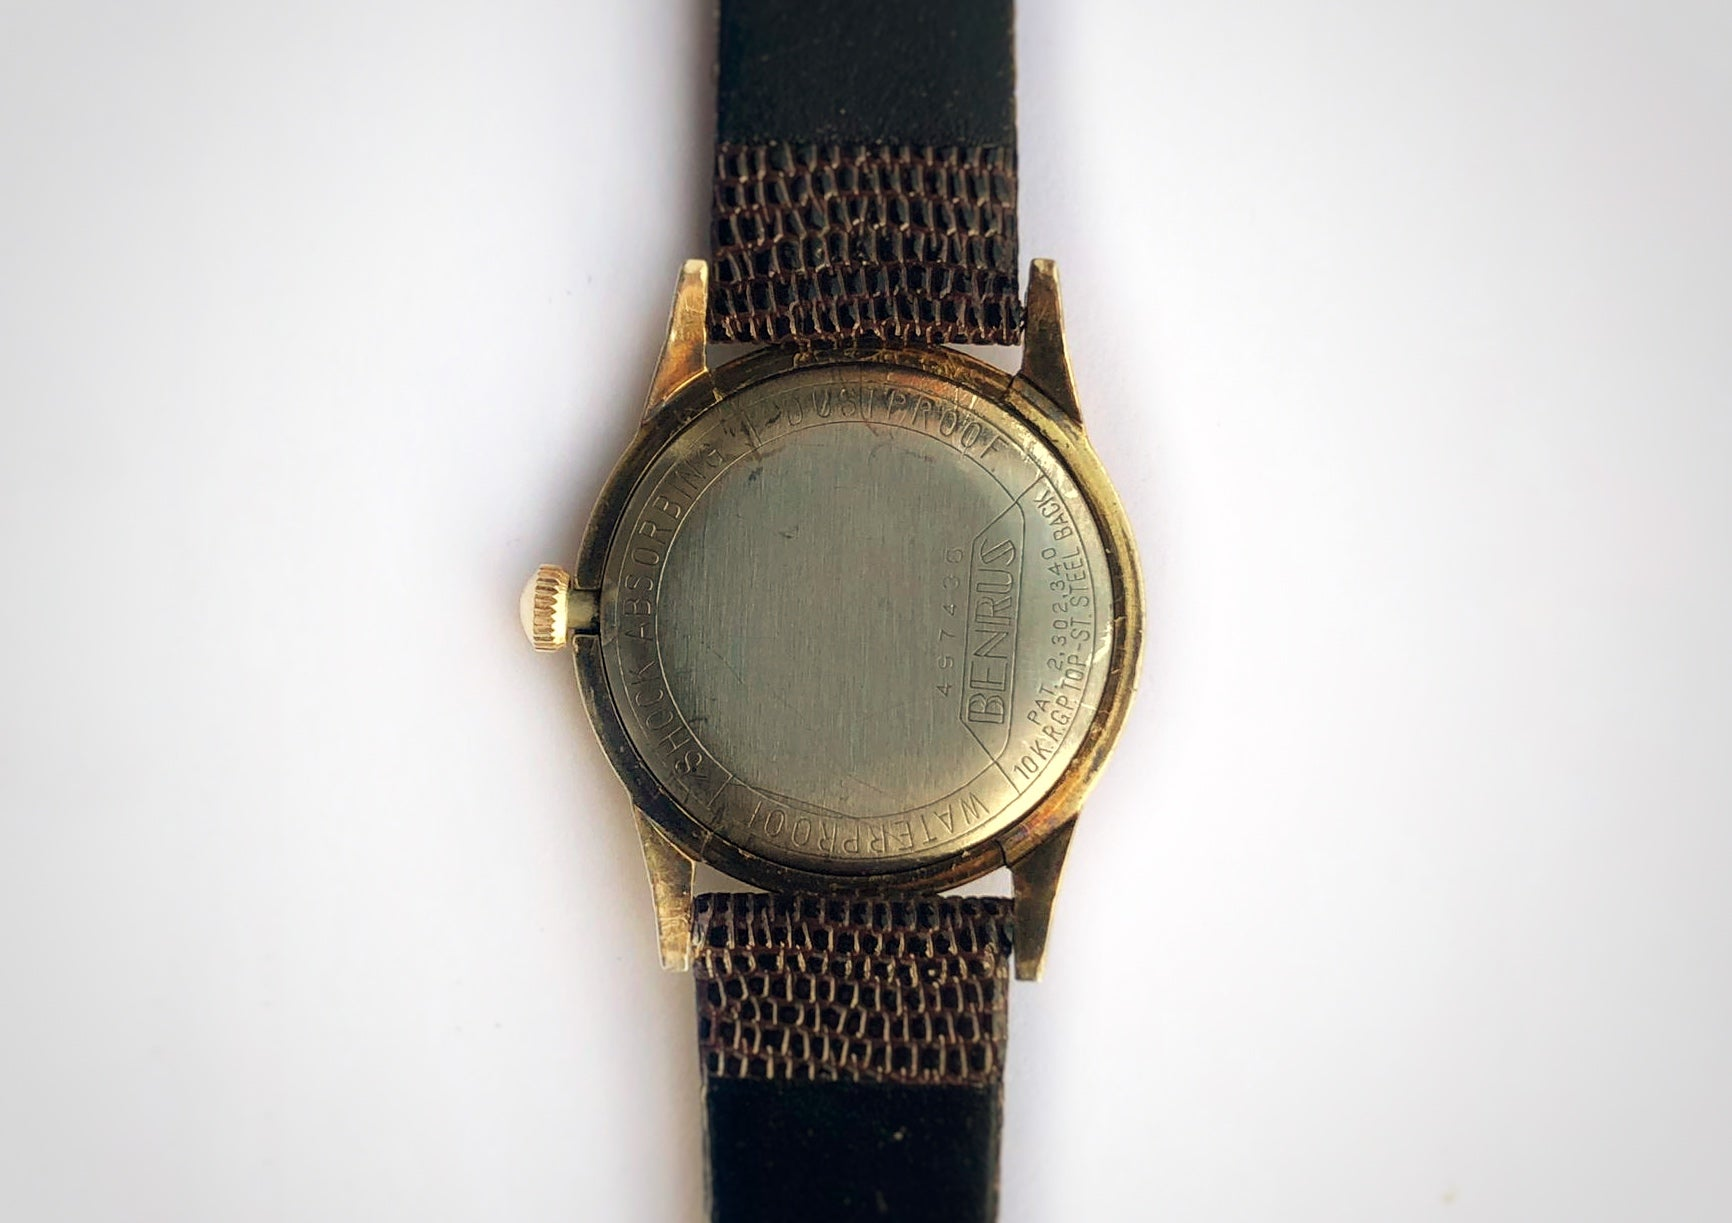 Back of Affordable vintage luxury watch with gold case and tropical dial made by Benrus with engraved caseback